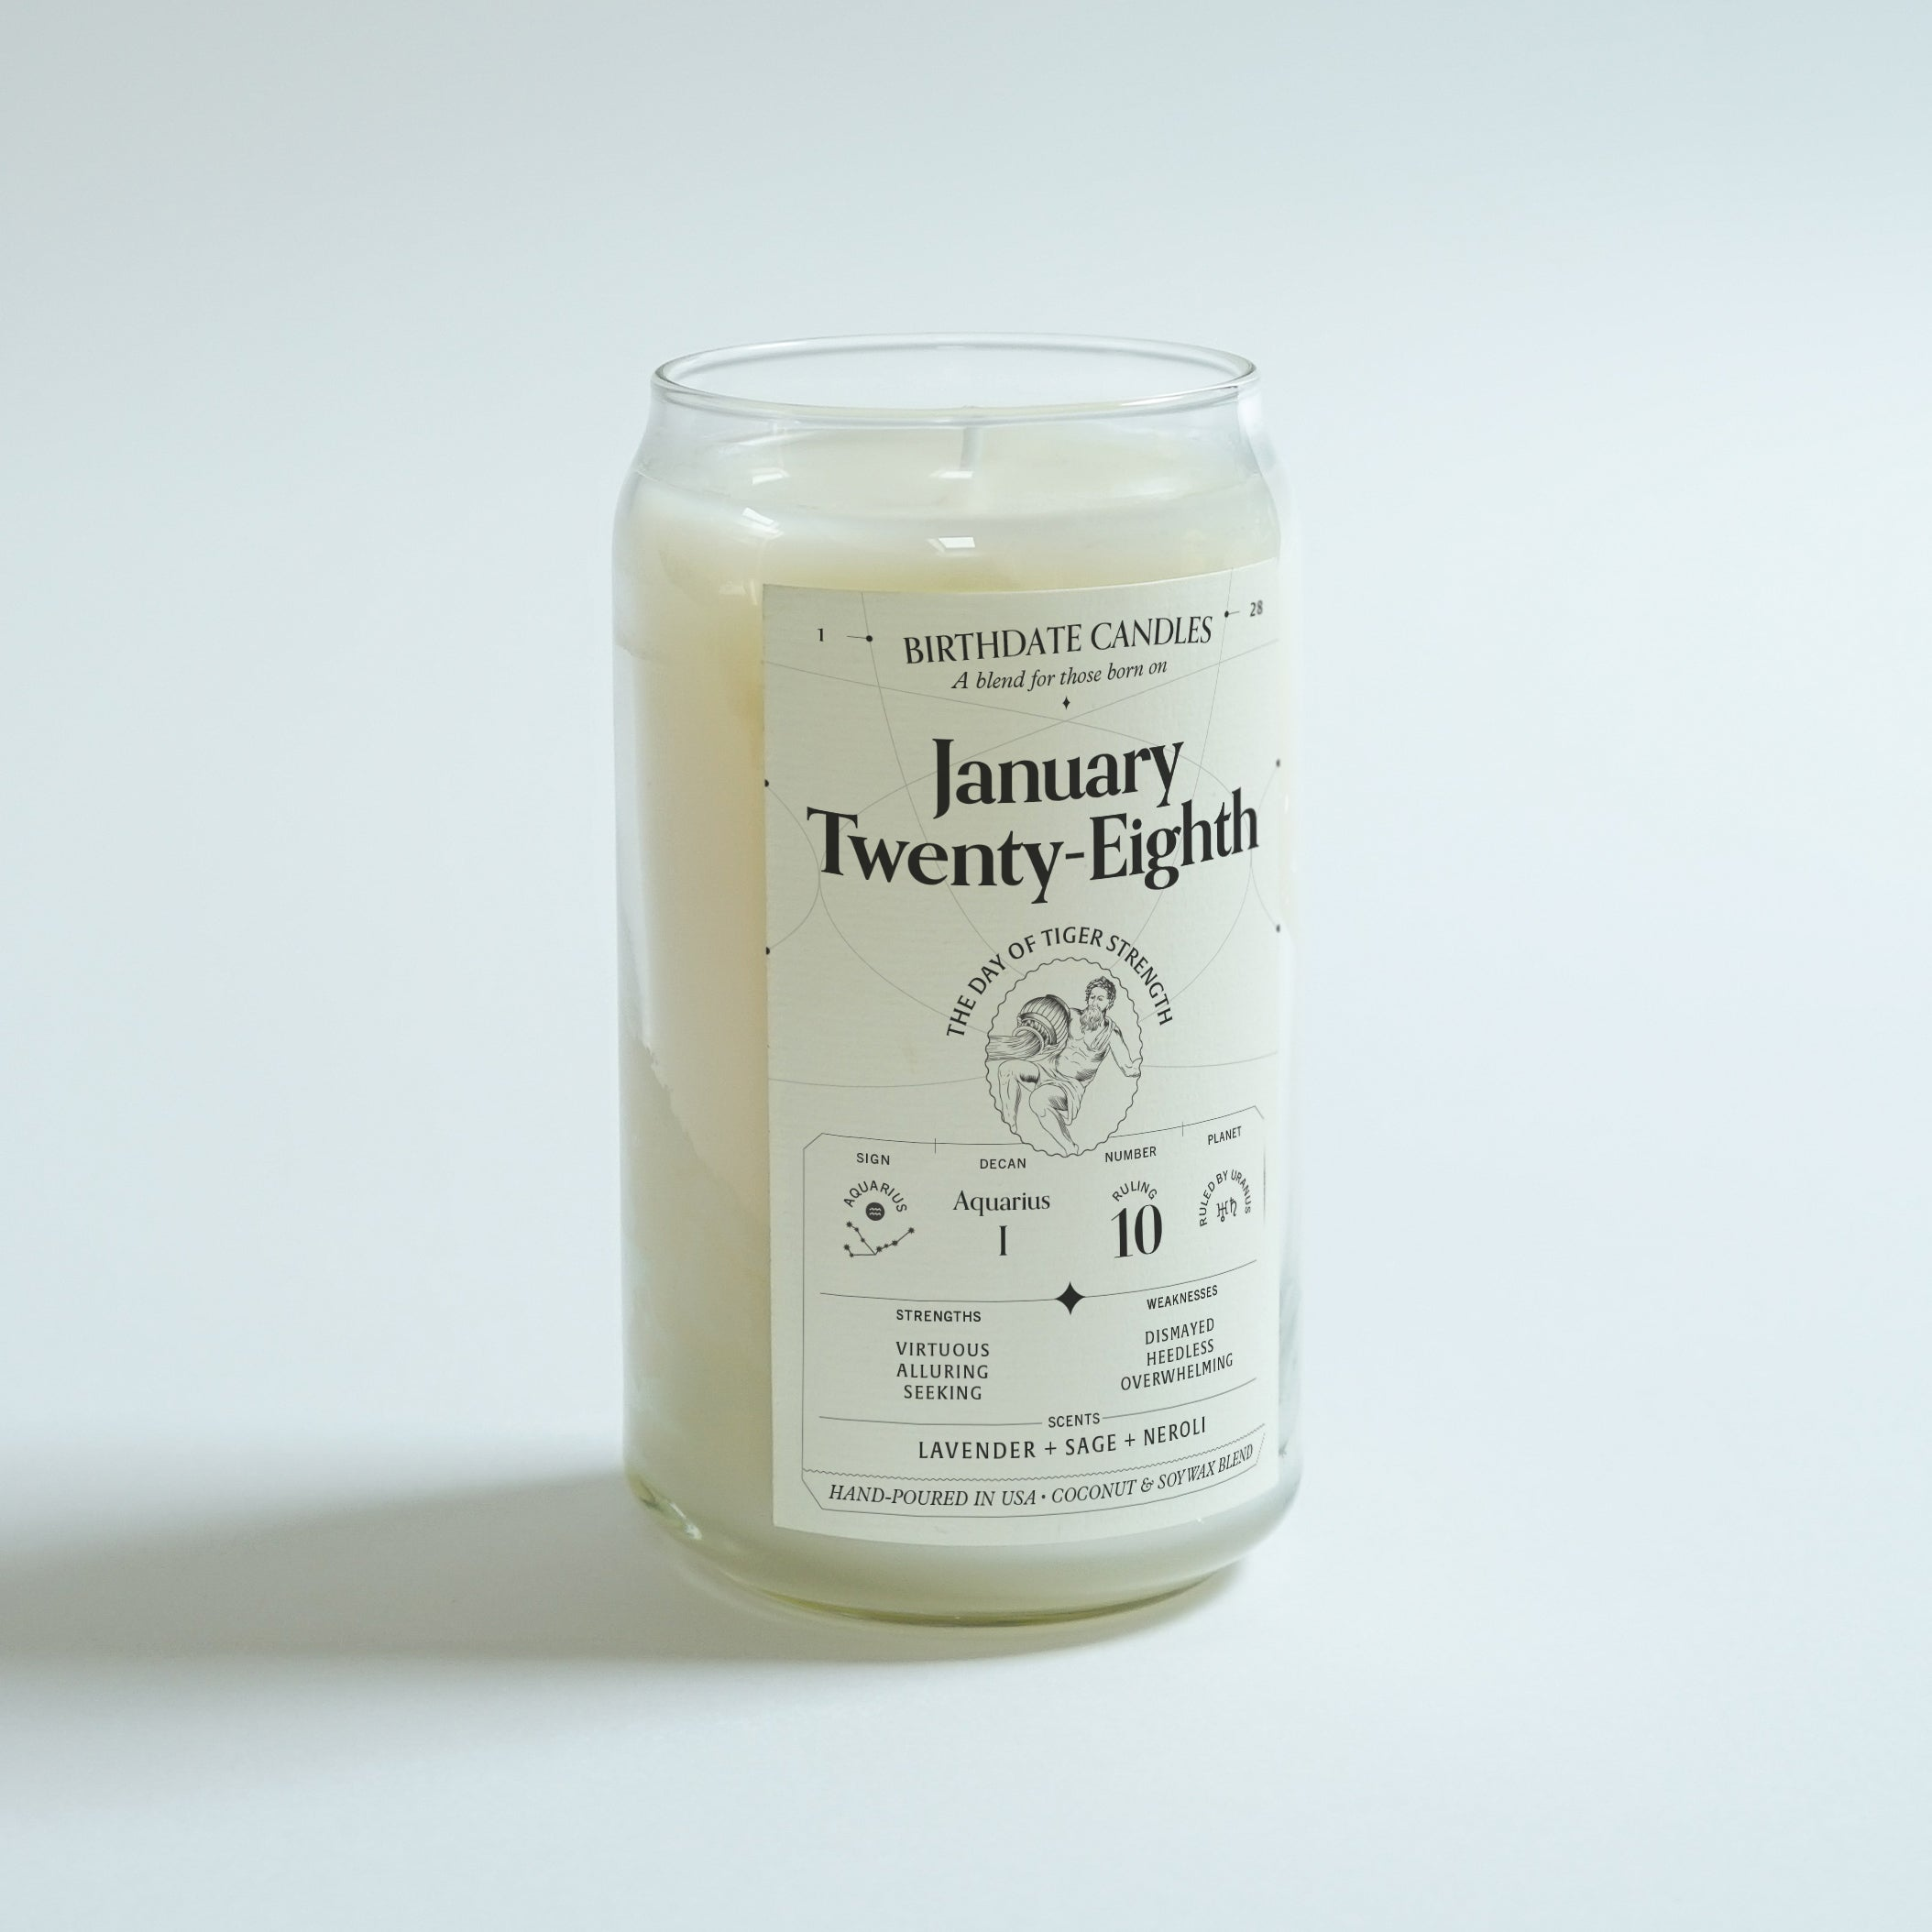 The January Twenty-Eighth Candle